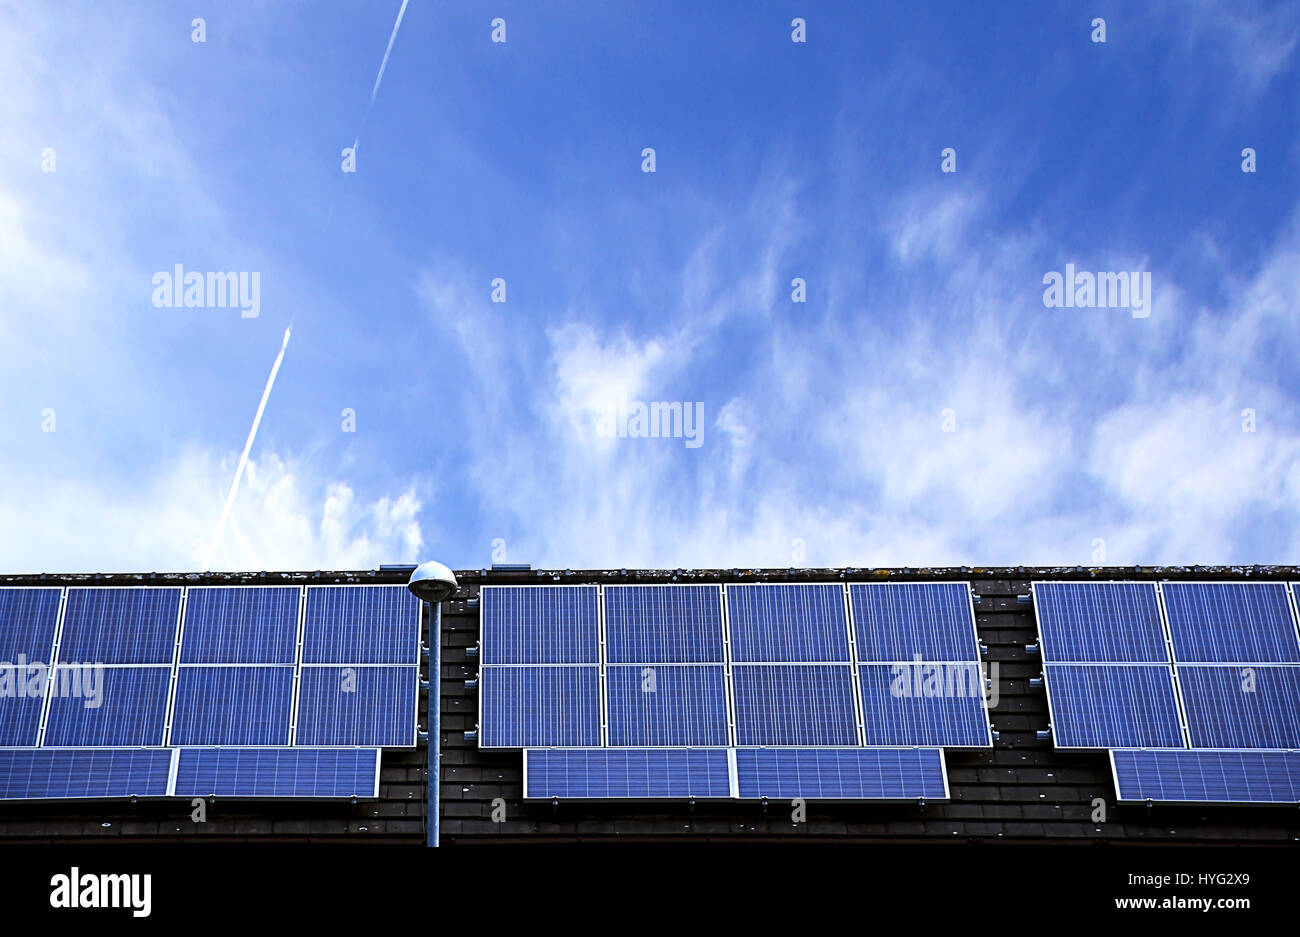 Solar panels on house roof with blue sky in background.Renewable energy source,Stoke on Trent,Staffordshire,United - Stock Image